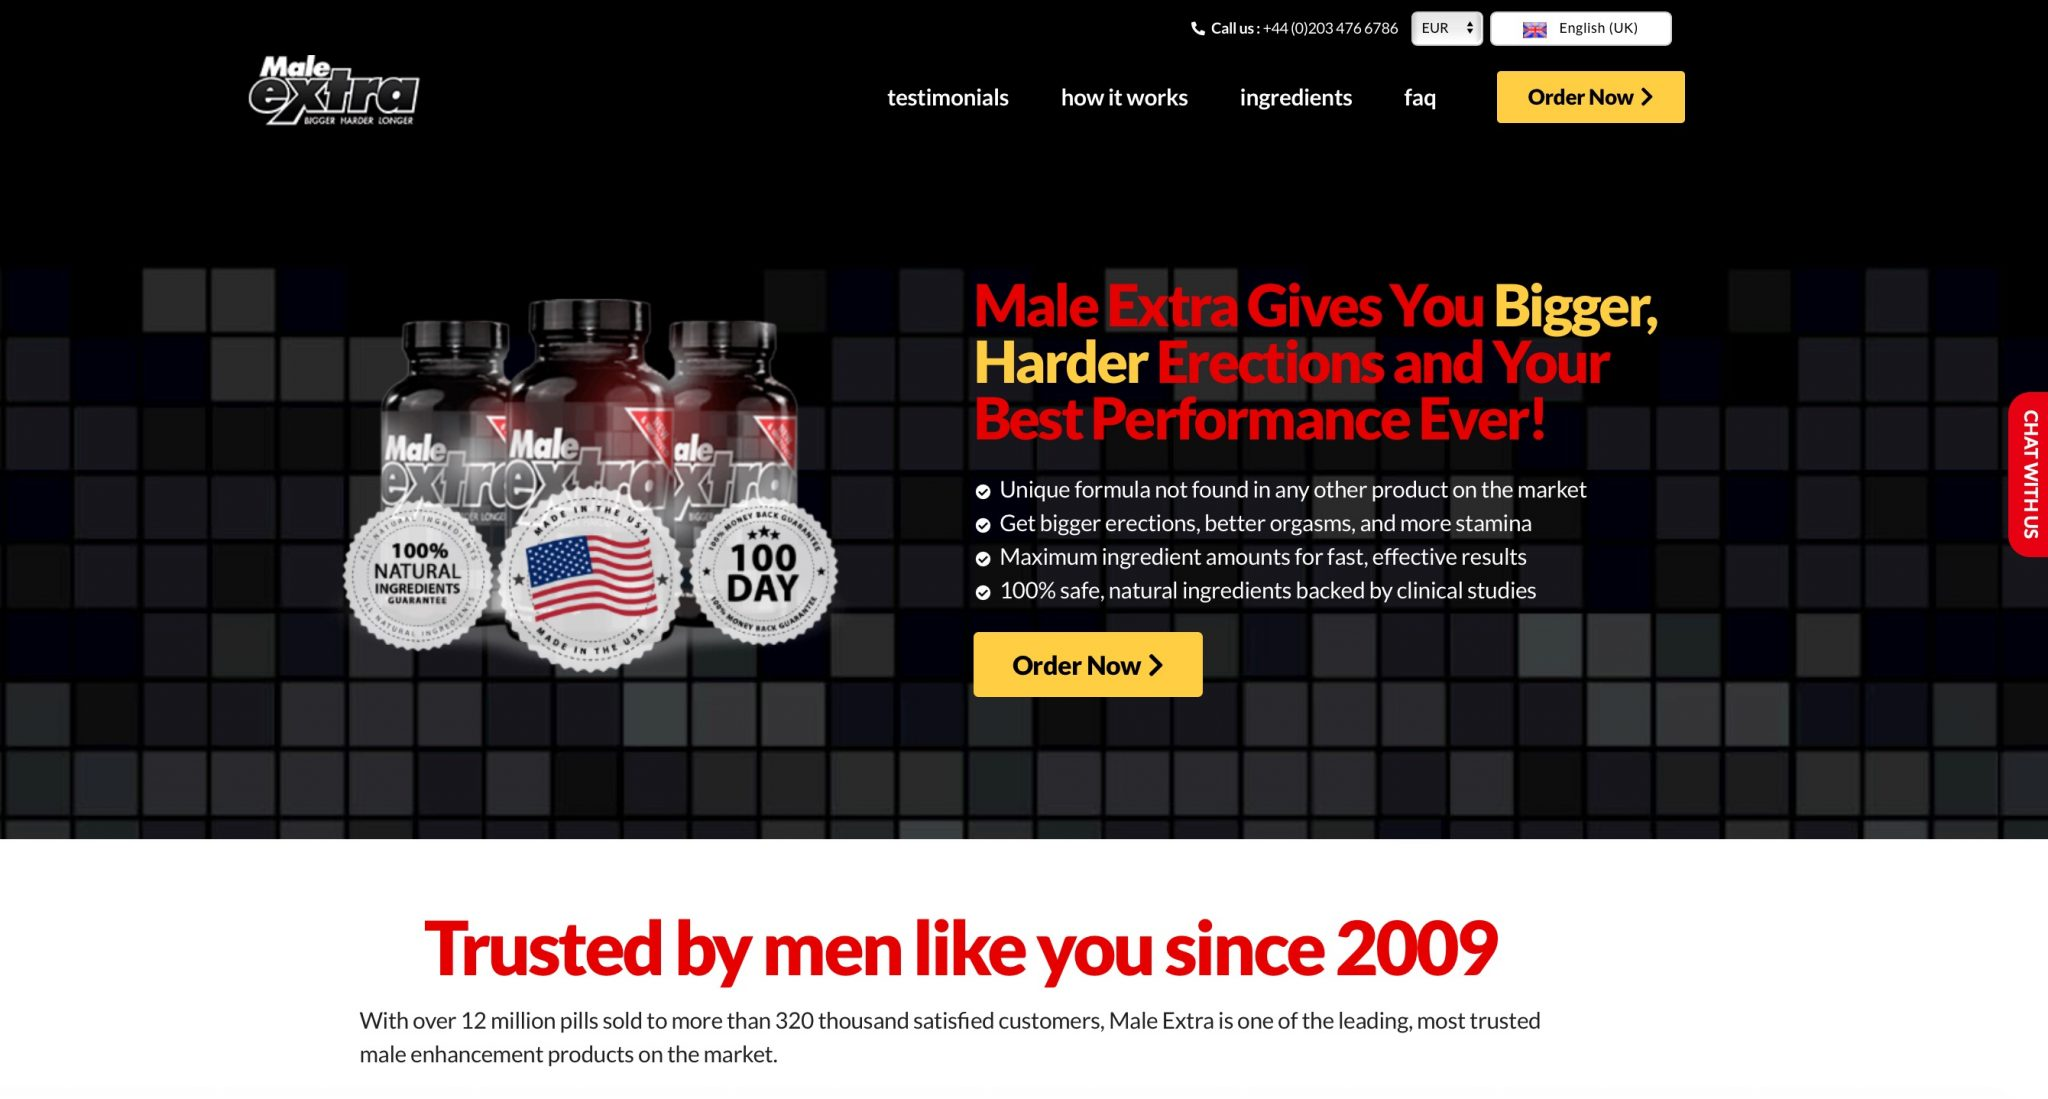 male extra uk website